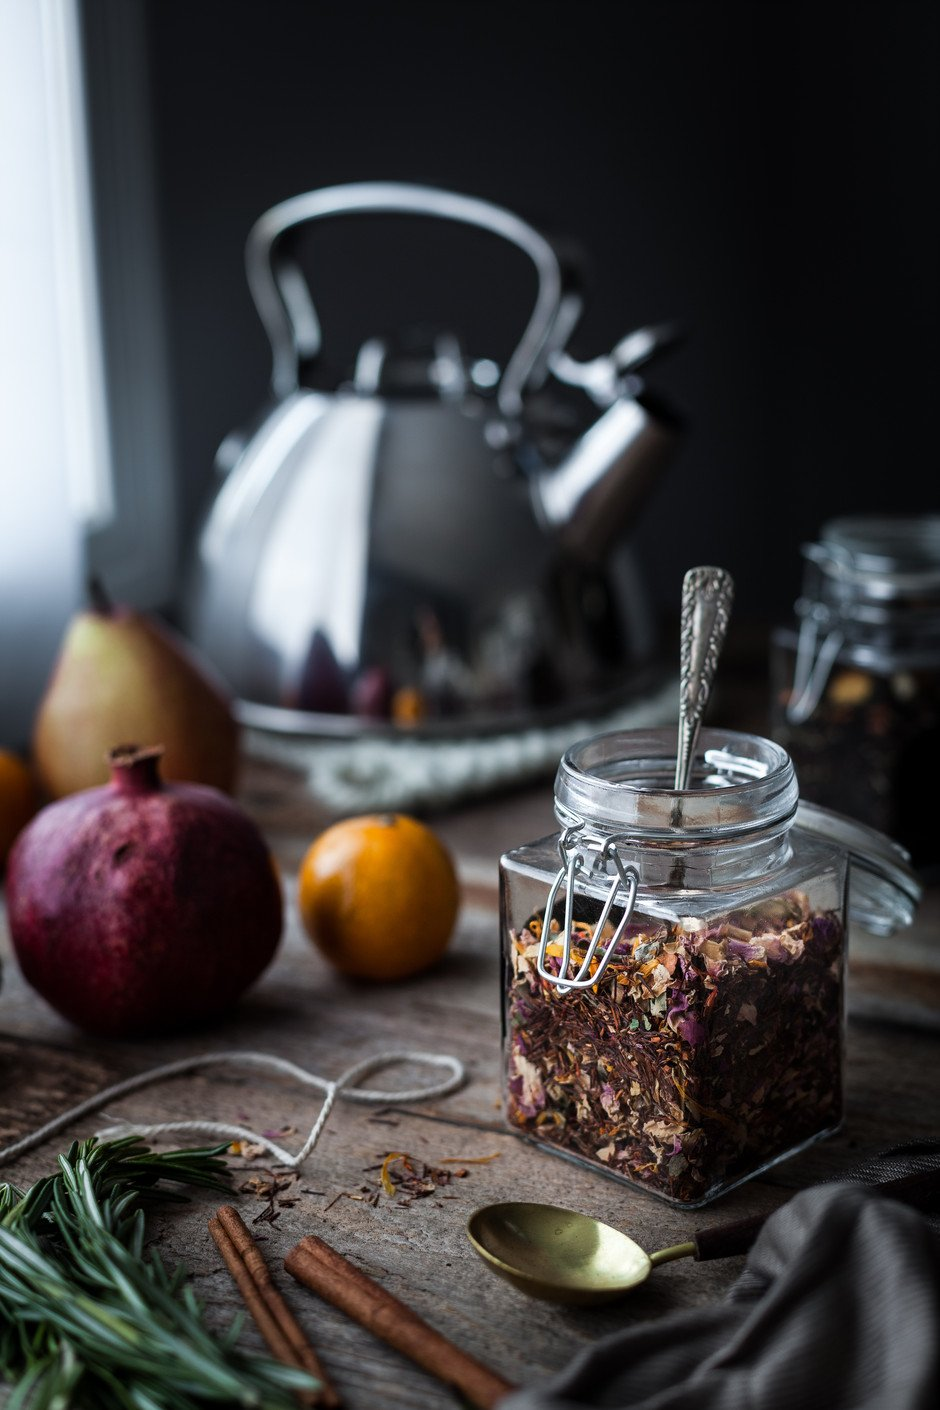 closeup image of a homemade tea blend in a glass jar with a kettle in the background..